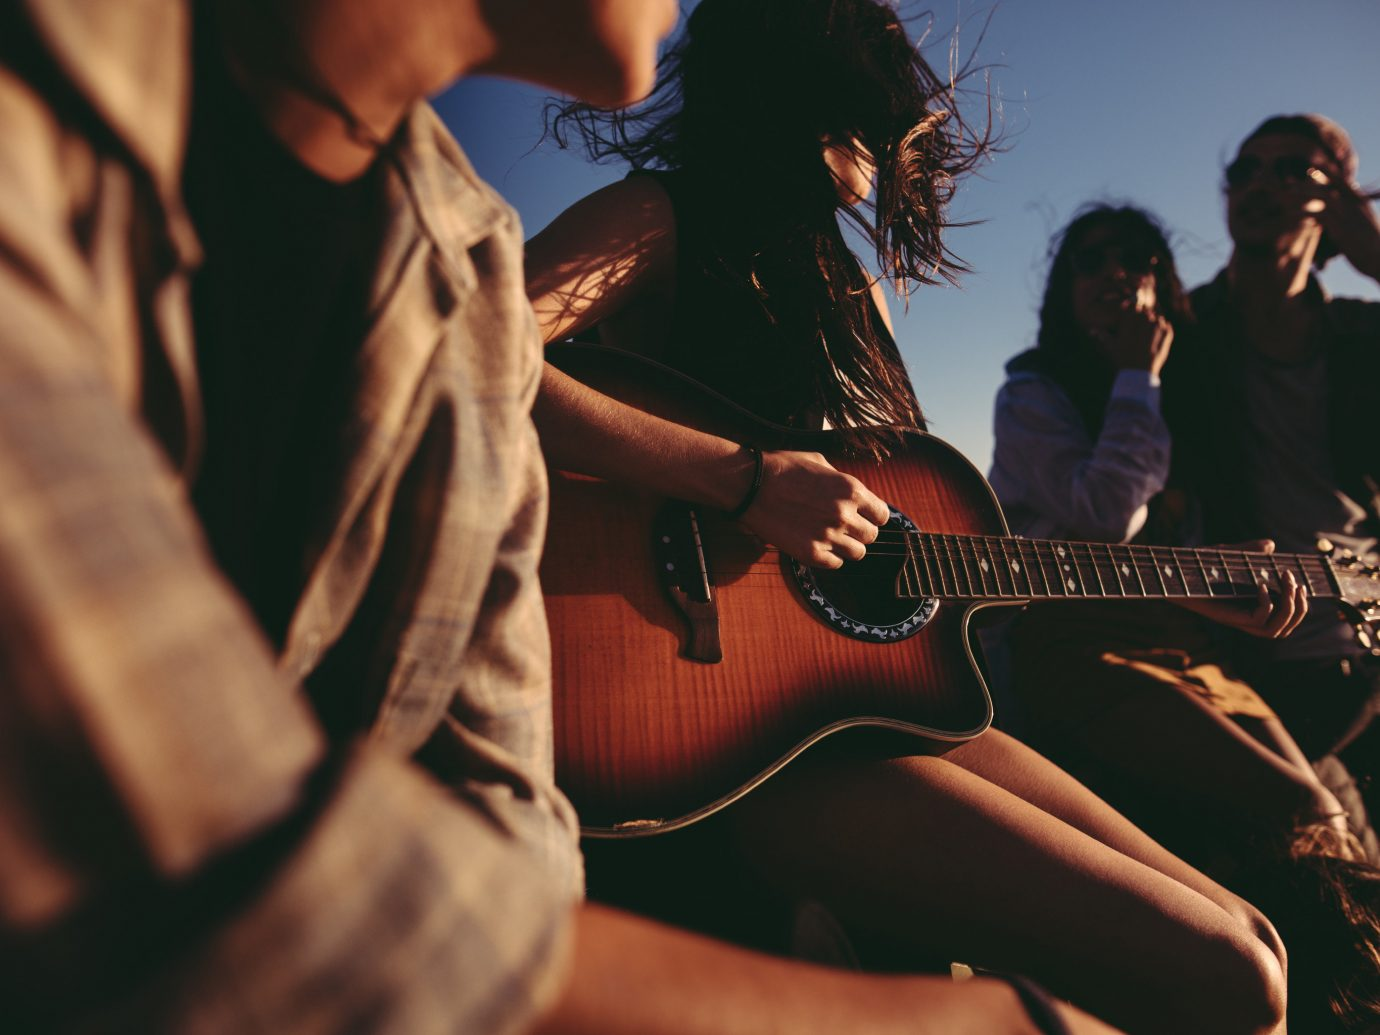 Budget person guitarist performance woman musician rock concert Music bassist string instrument Entertainment guitar concert plucked string instruments singing singer songwriter musical ensemble